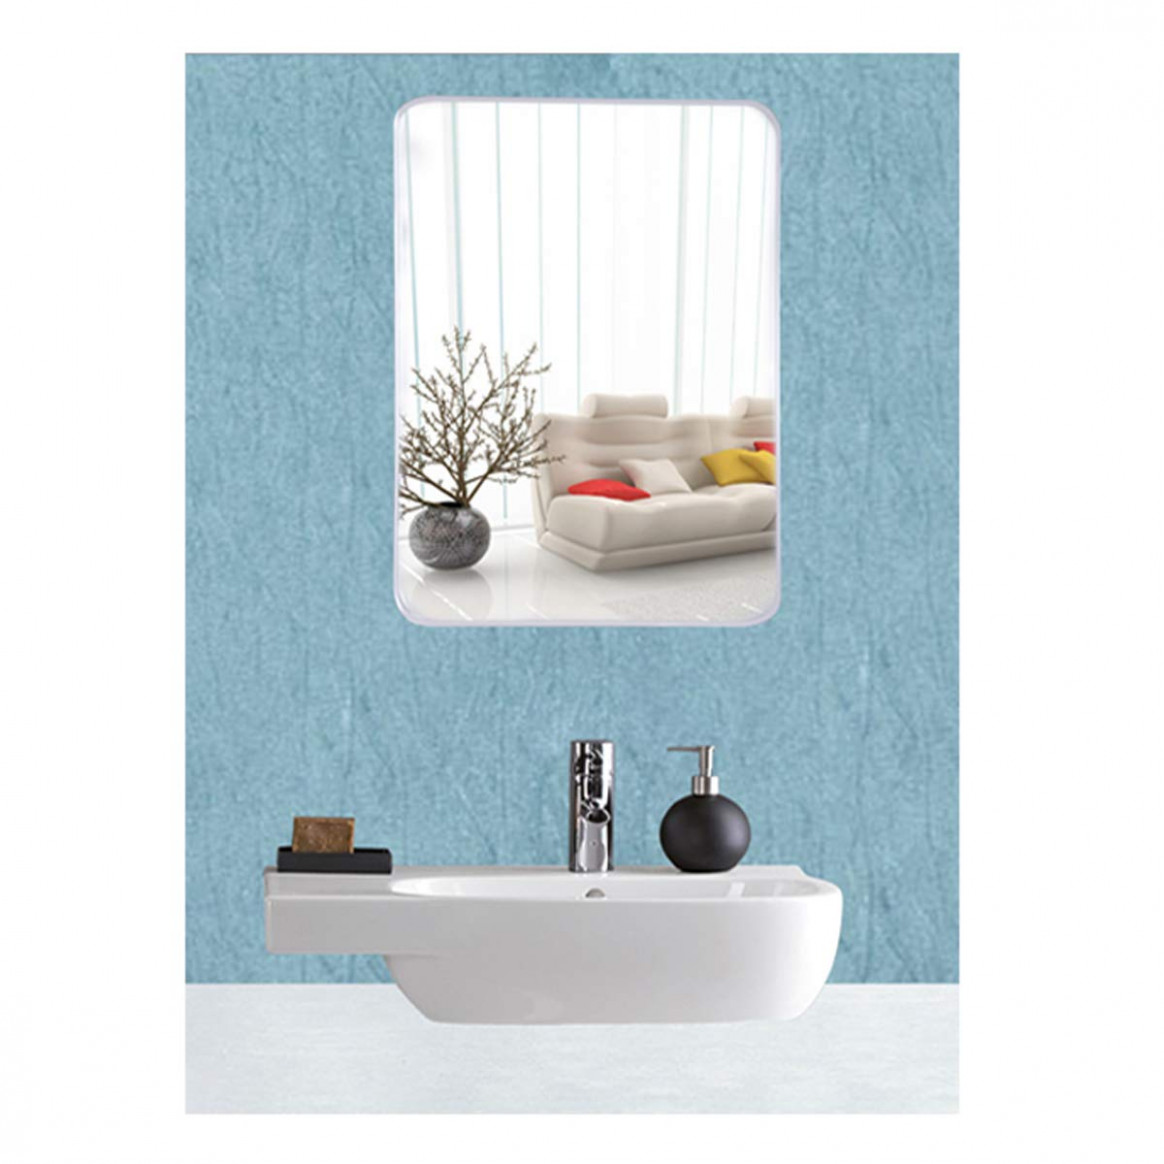 Buy Frameless Mirror | Mirror Glass for Wall | Mirror for Bathroom ...